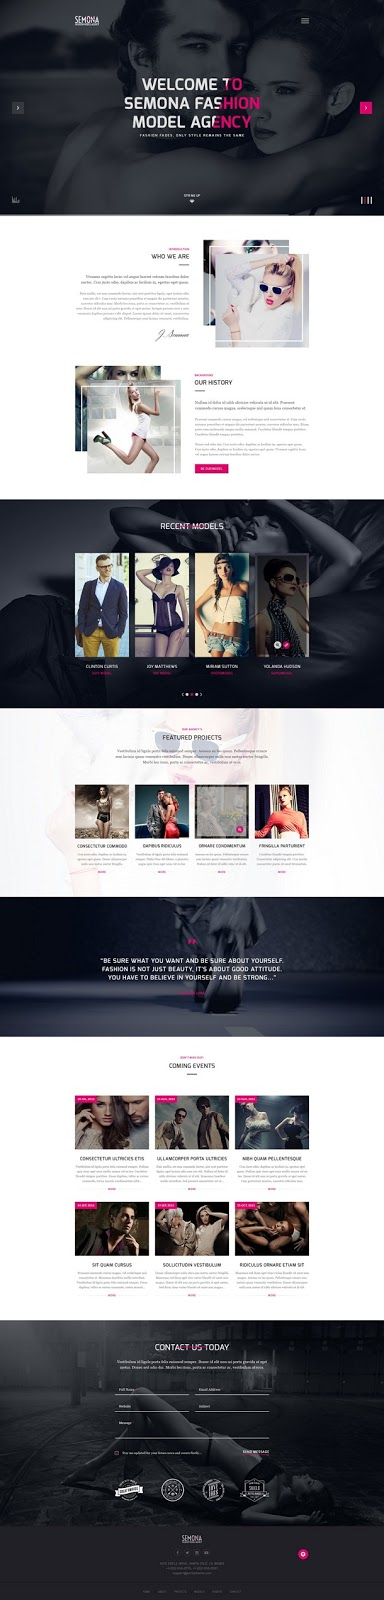 Fashion Semona Creative Joomla Template